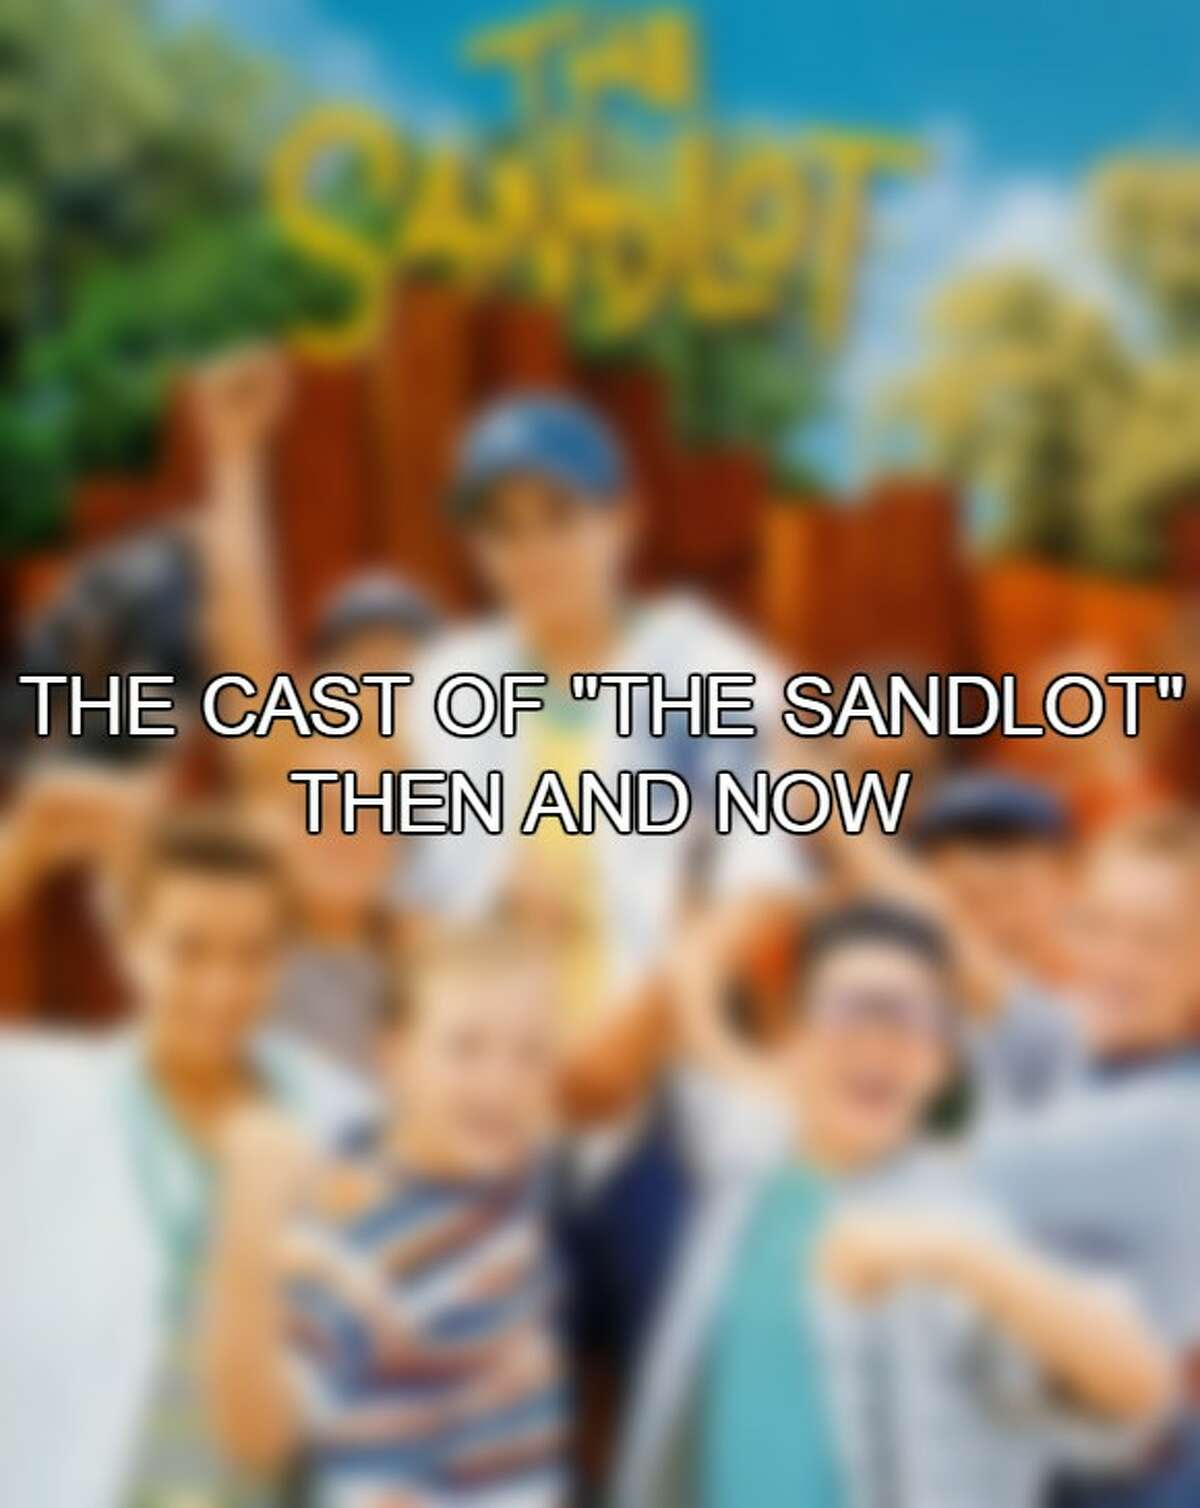 The Sandlot was released in 1993 and has since become a beacon of '90s pop culture. Keep clicking to see what the cast is up to now.